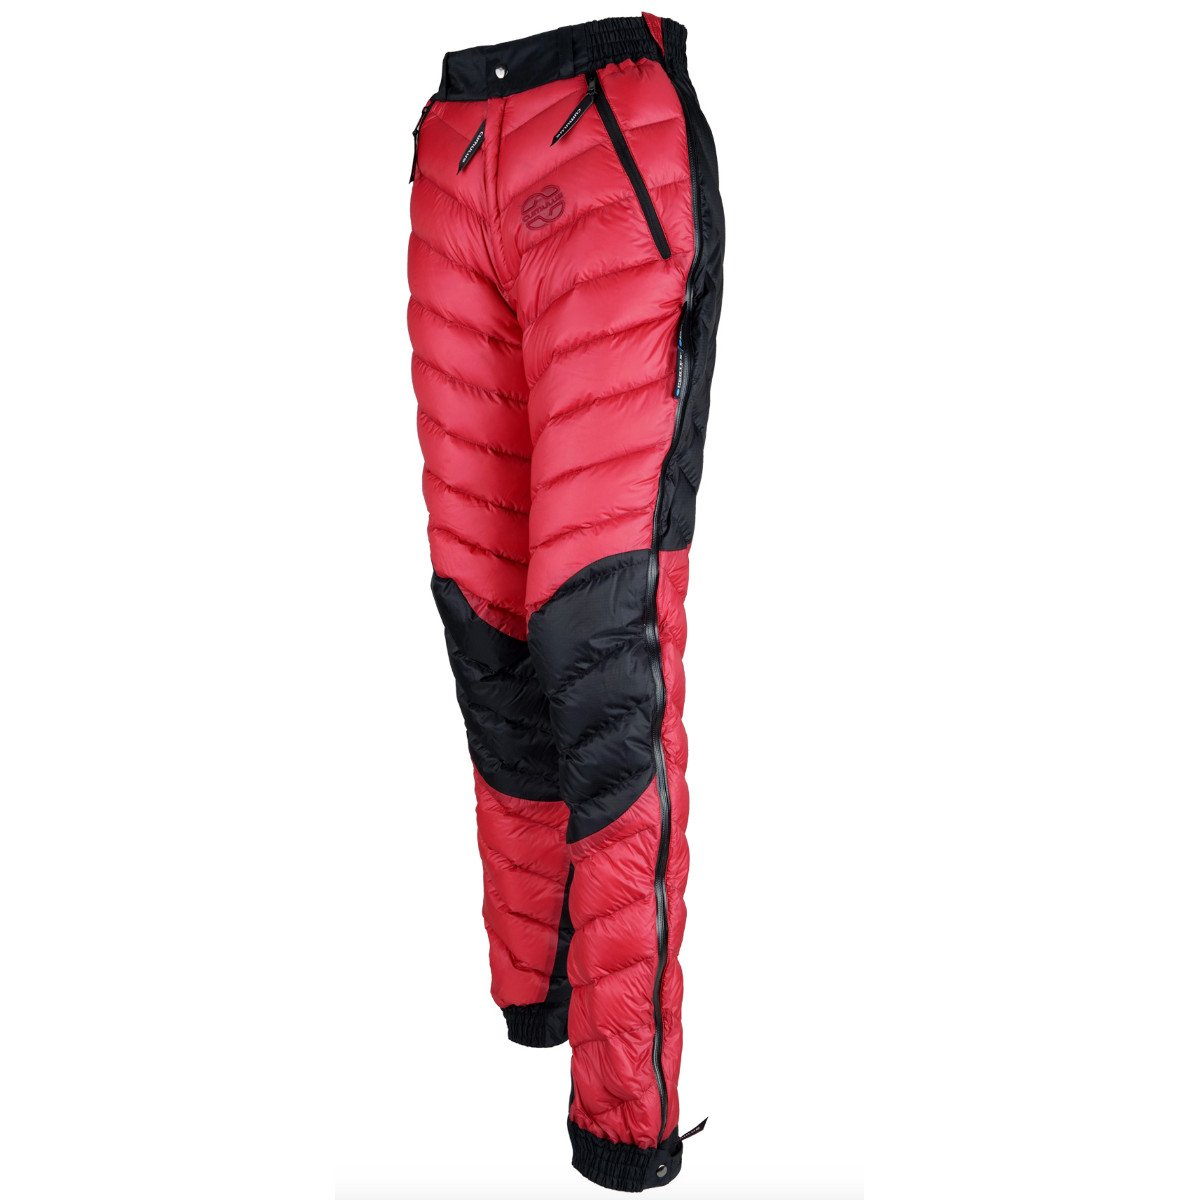 Cumulus Transition Down Pants Womens, front/side view in Red colour